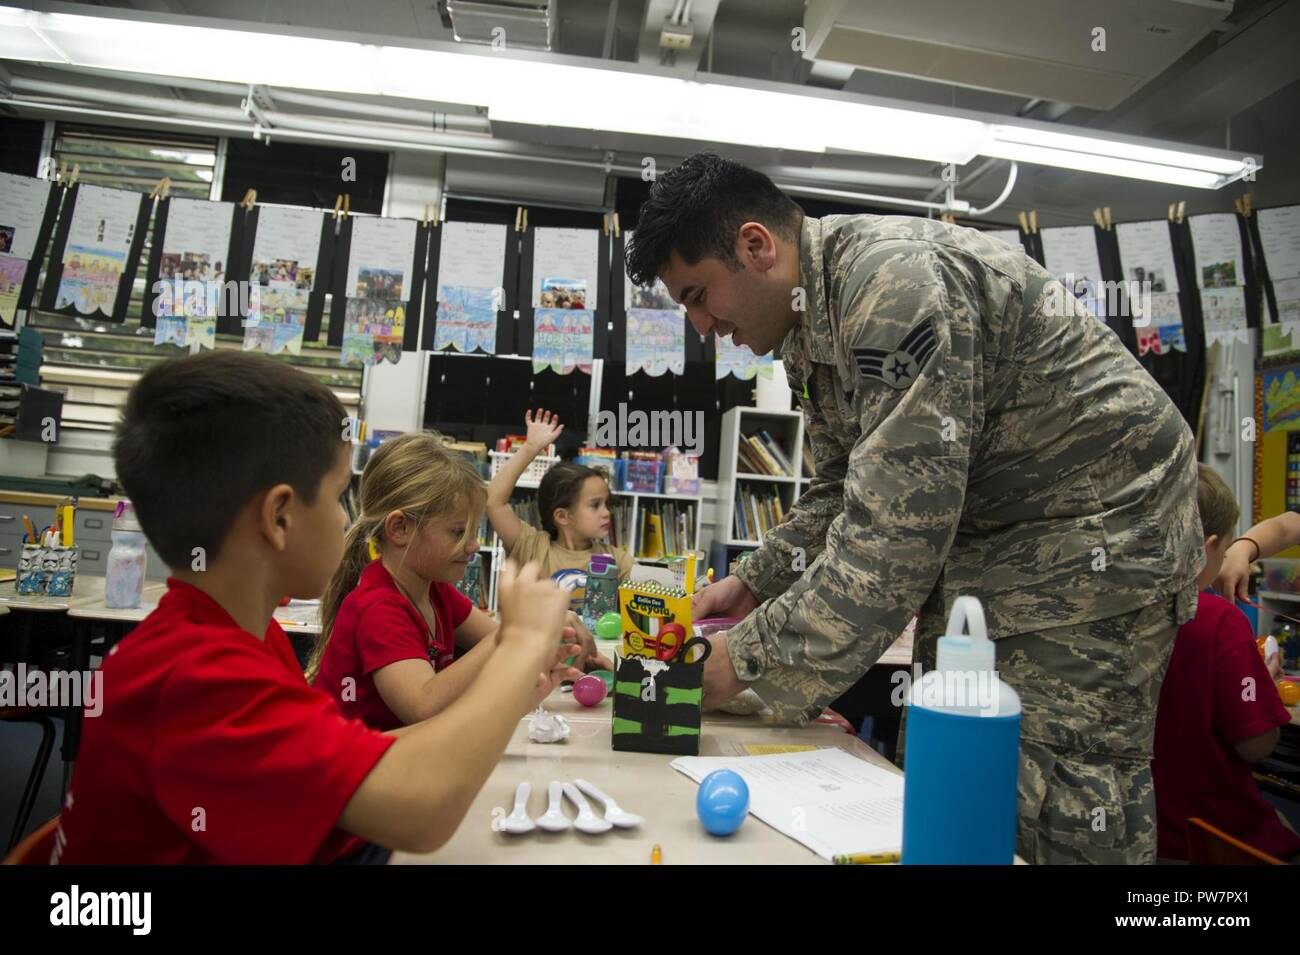 Senior Airman Eddy Santibanez, 647th Logistics Readiness Squadron combat mobility team member, helps second grade students make maracas at Hickam Elementary School, Joint Base Pearl Harbor-Hickam, Hawaii, Sept. 27, 2017.  Volunteers organized a variety of events for the students in support of Hispanic Heritage Month.  Hispanic Heritage Month is observed from 15 Sept.-15 Oct. to celebrate the history, culture and contributions of American citizens whose ancestors came from Spain, Mexico, the Caribbean and Central and South America. - Stock Image